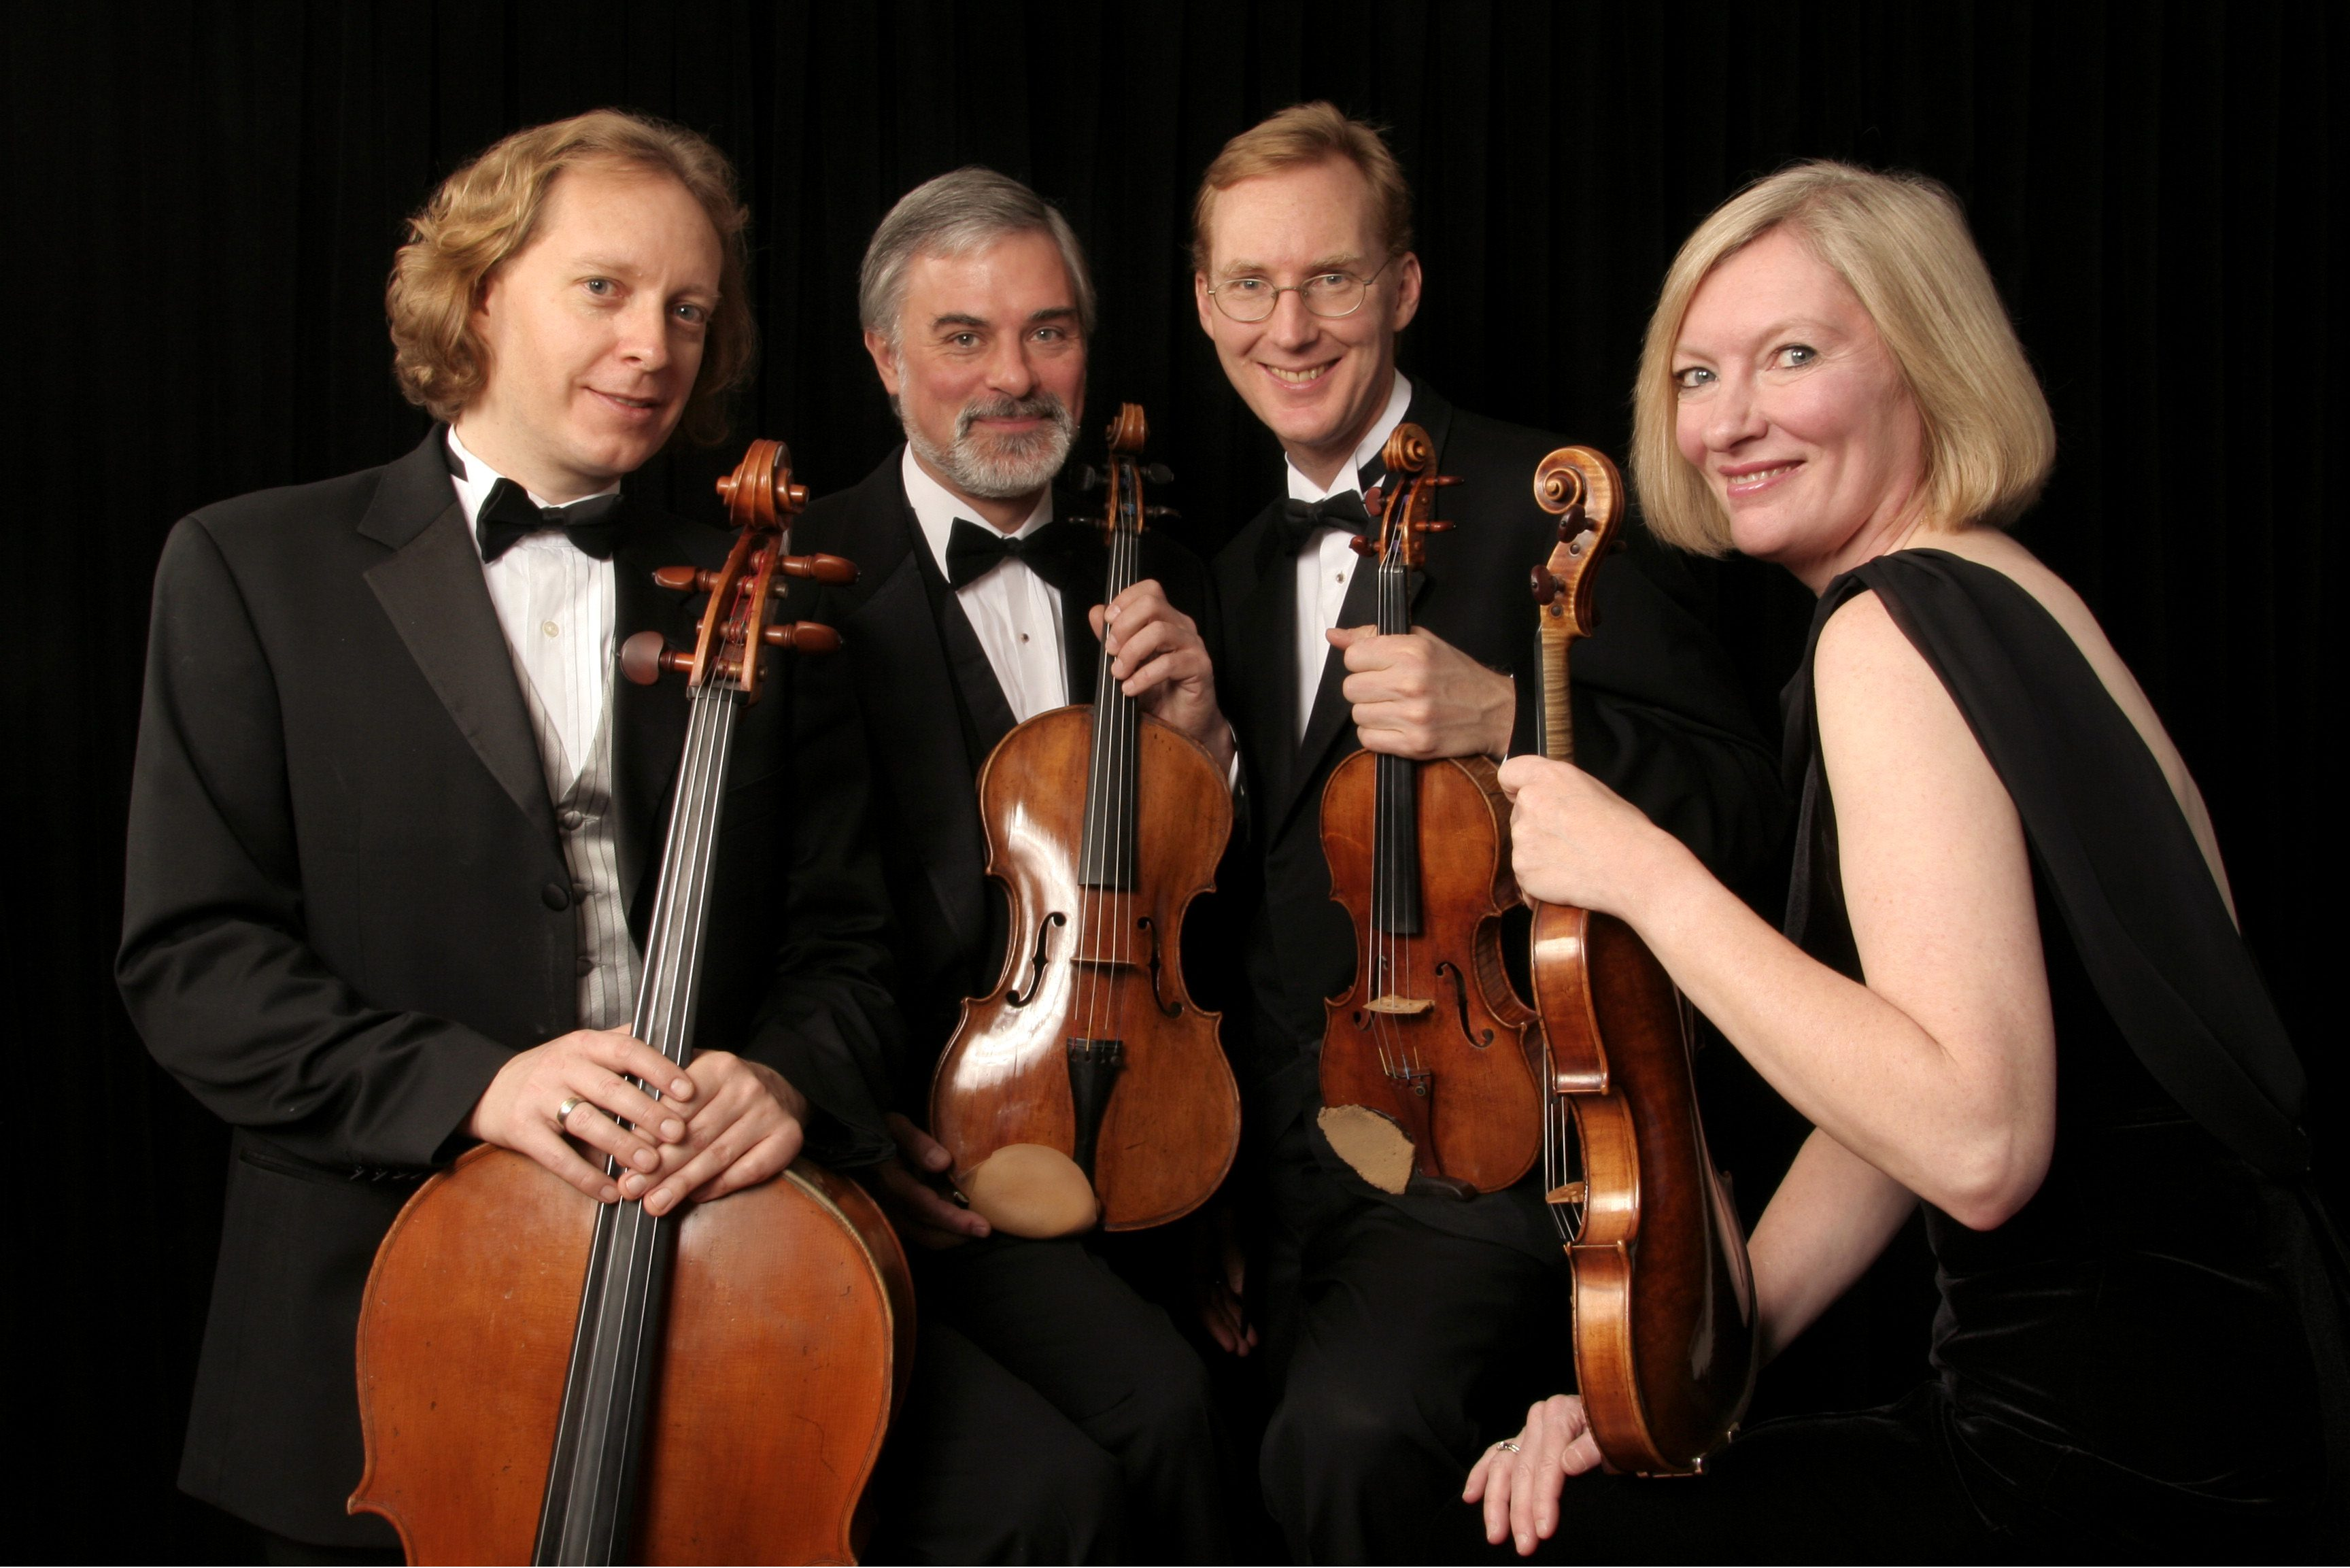 The four members of the American String Quartet